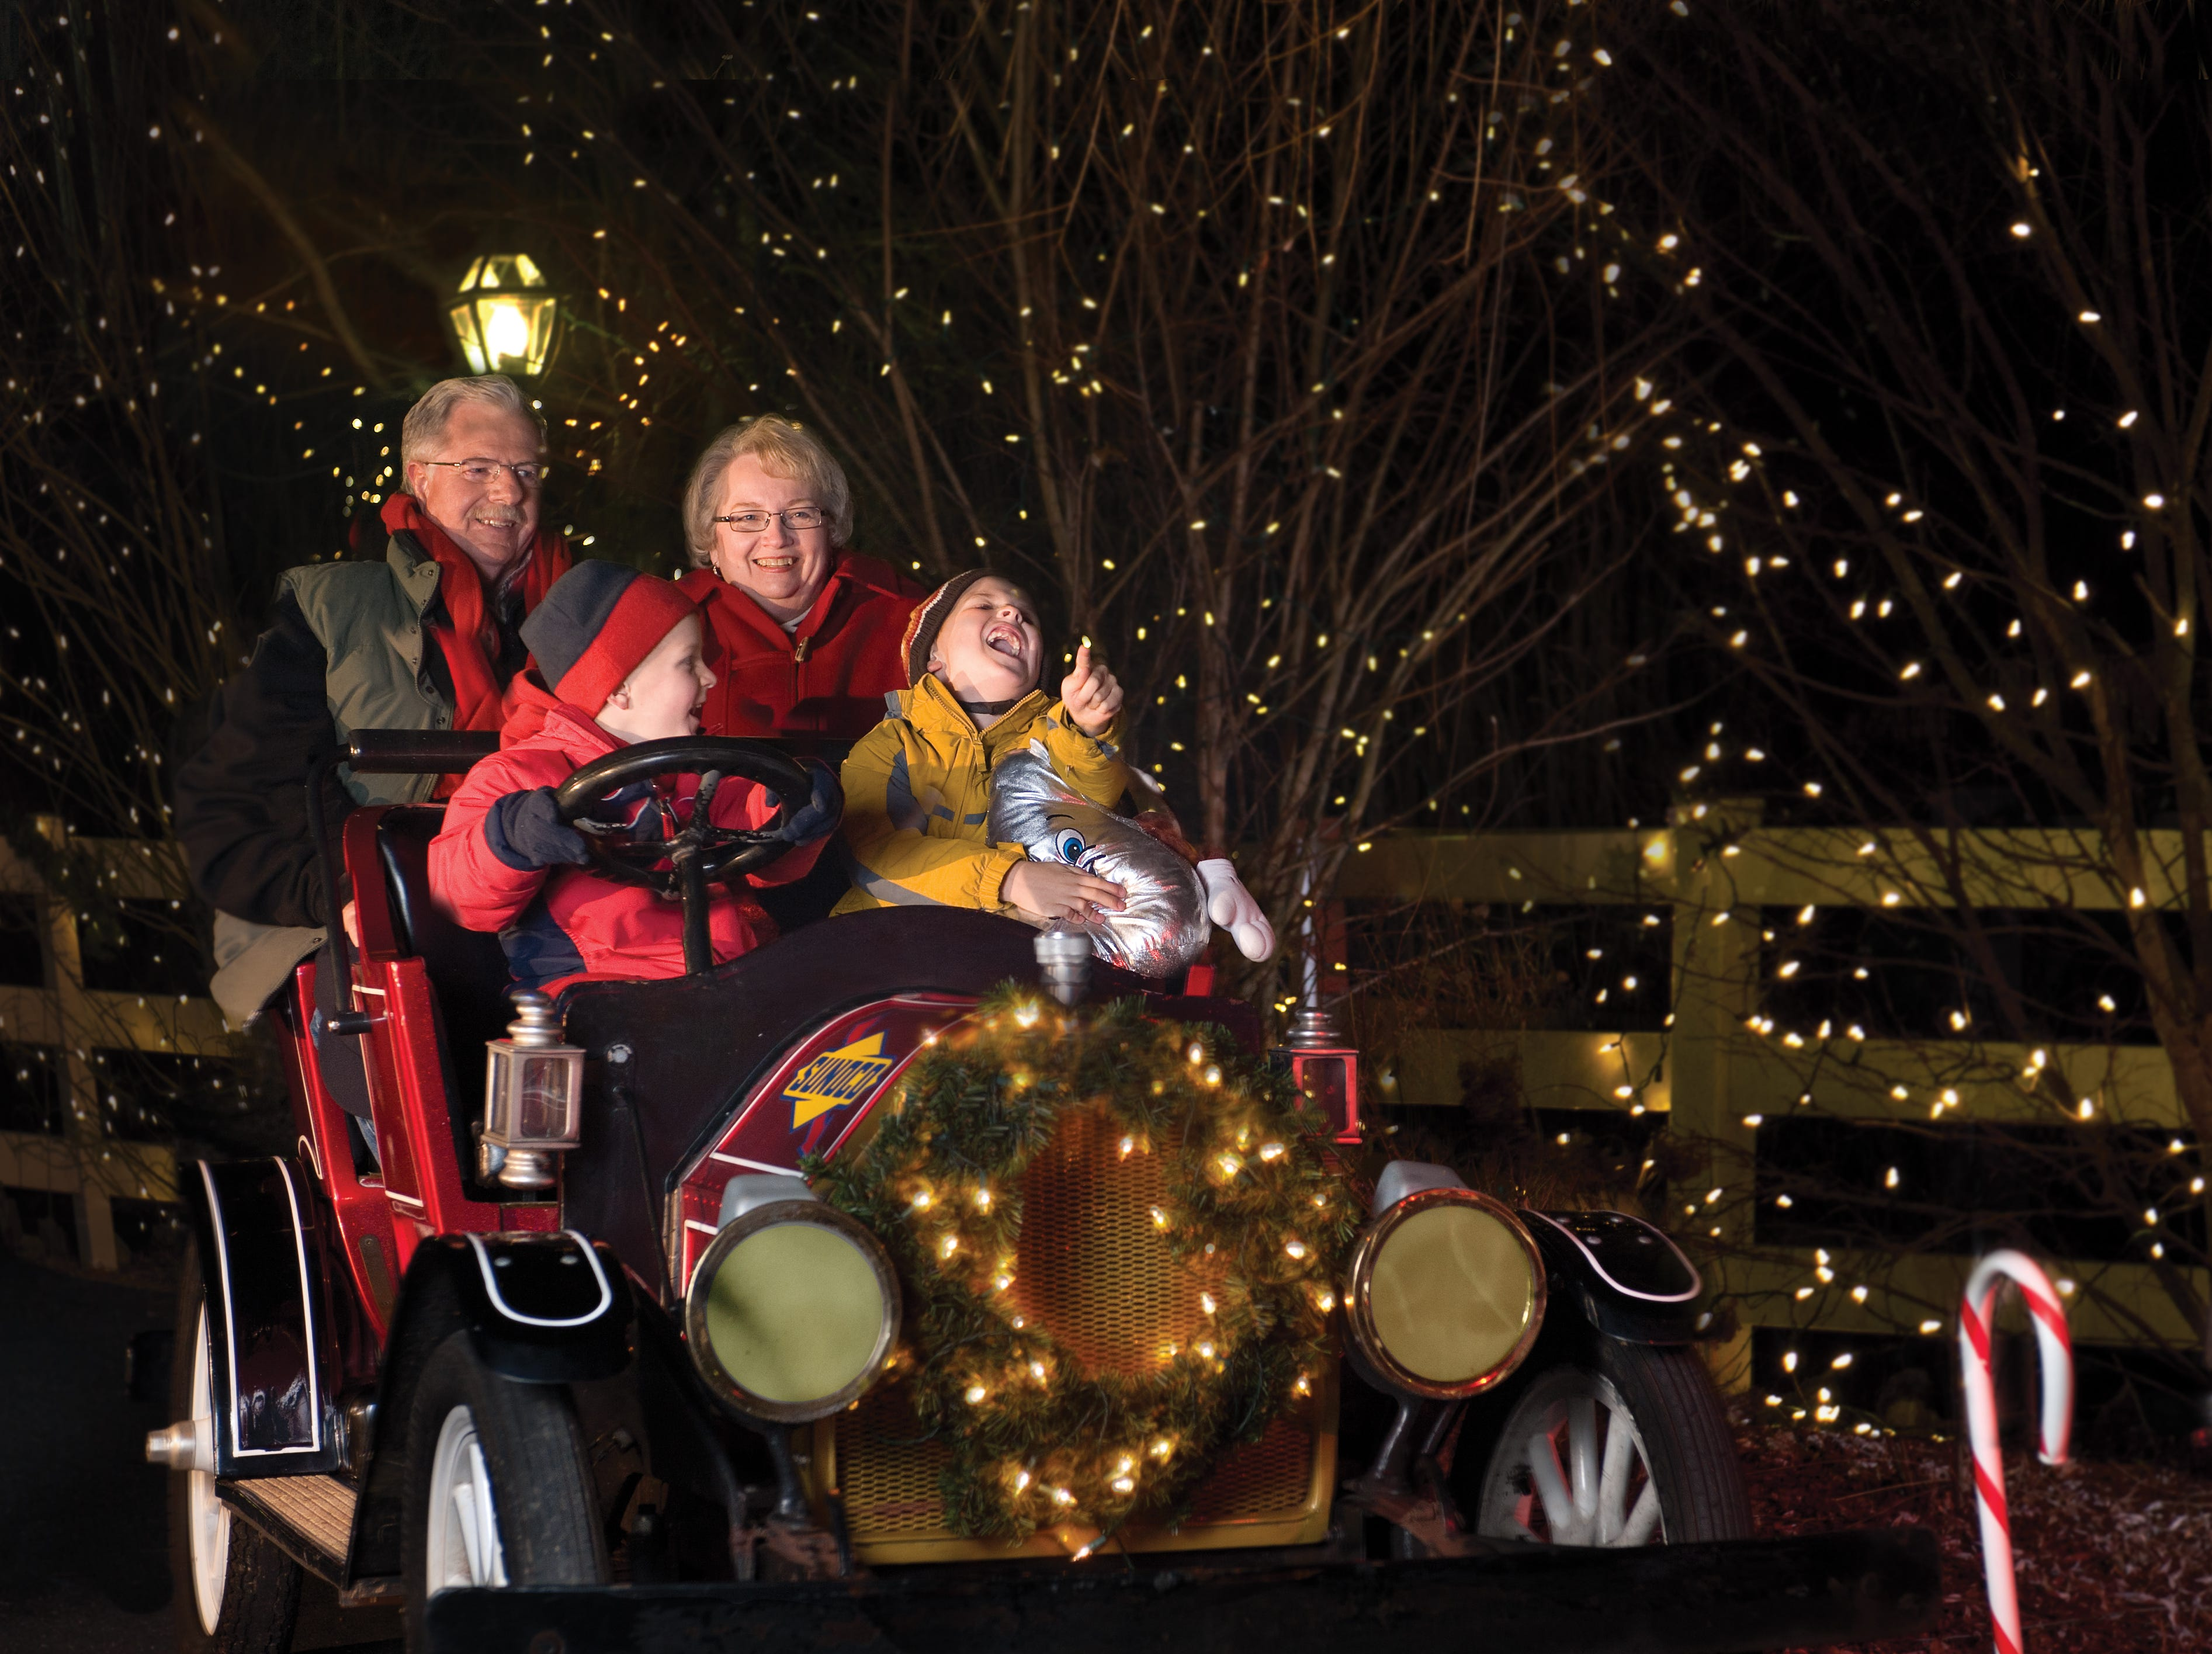 Families have been making holiday memories at Hersheypark Christmas Candylane for 35 years now.